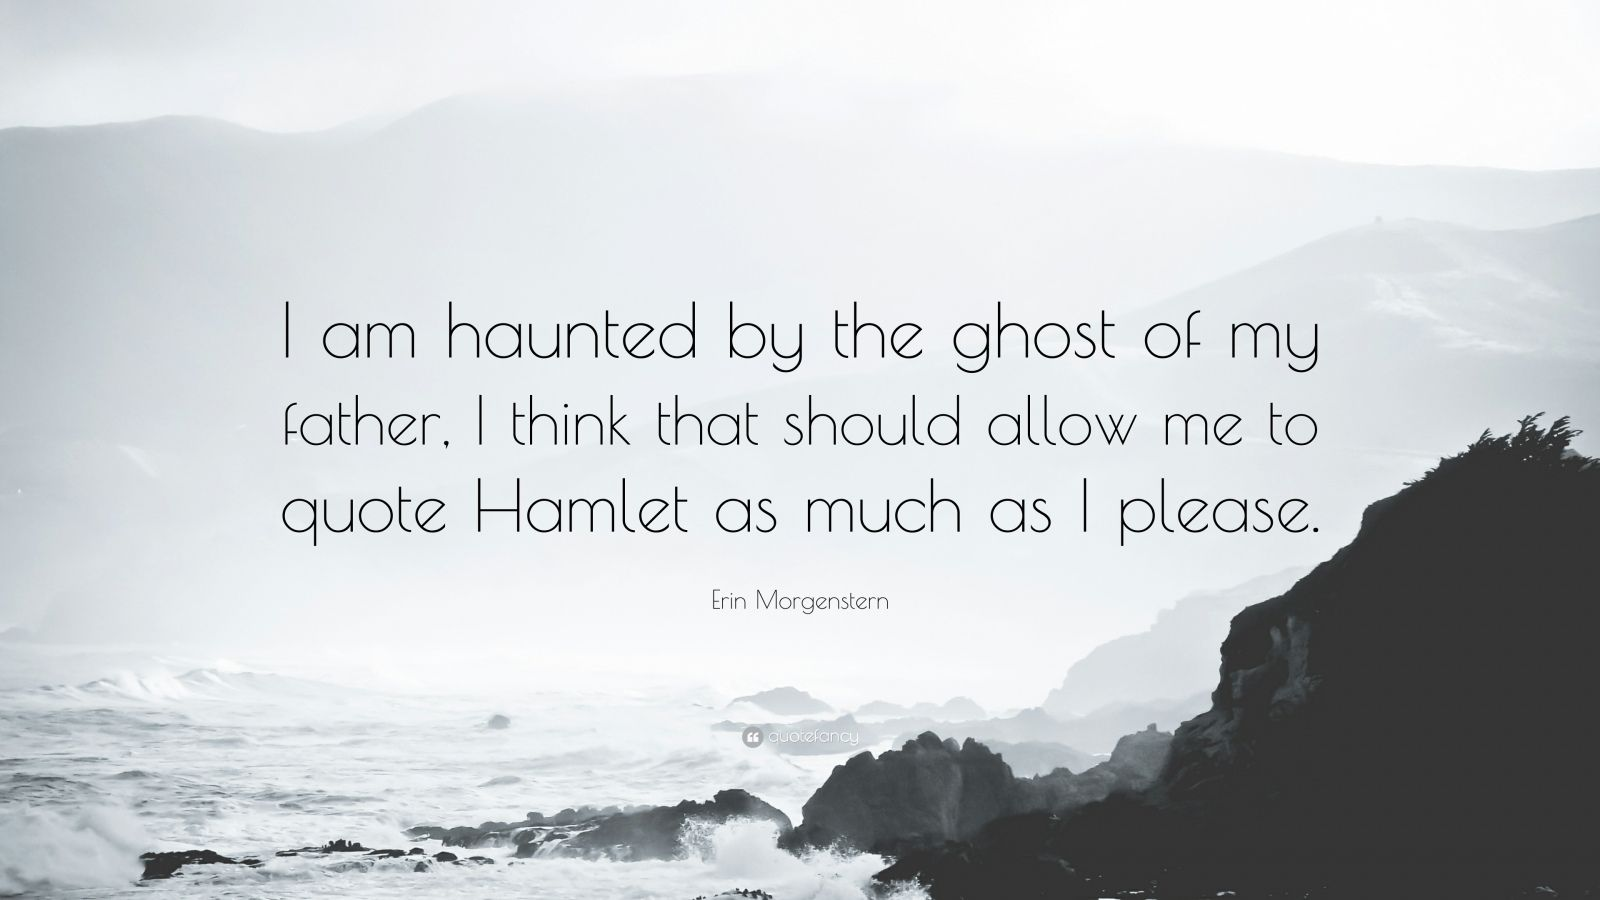 hamlet as so much more than a About expertrain started as a social media profile in 2012 from our beginnings as a social media profile to launching this wonderful website in 2014, we have tried to stay true to our core beliefs - inform, motivate and inspire.